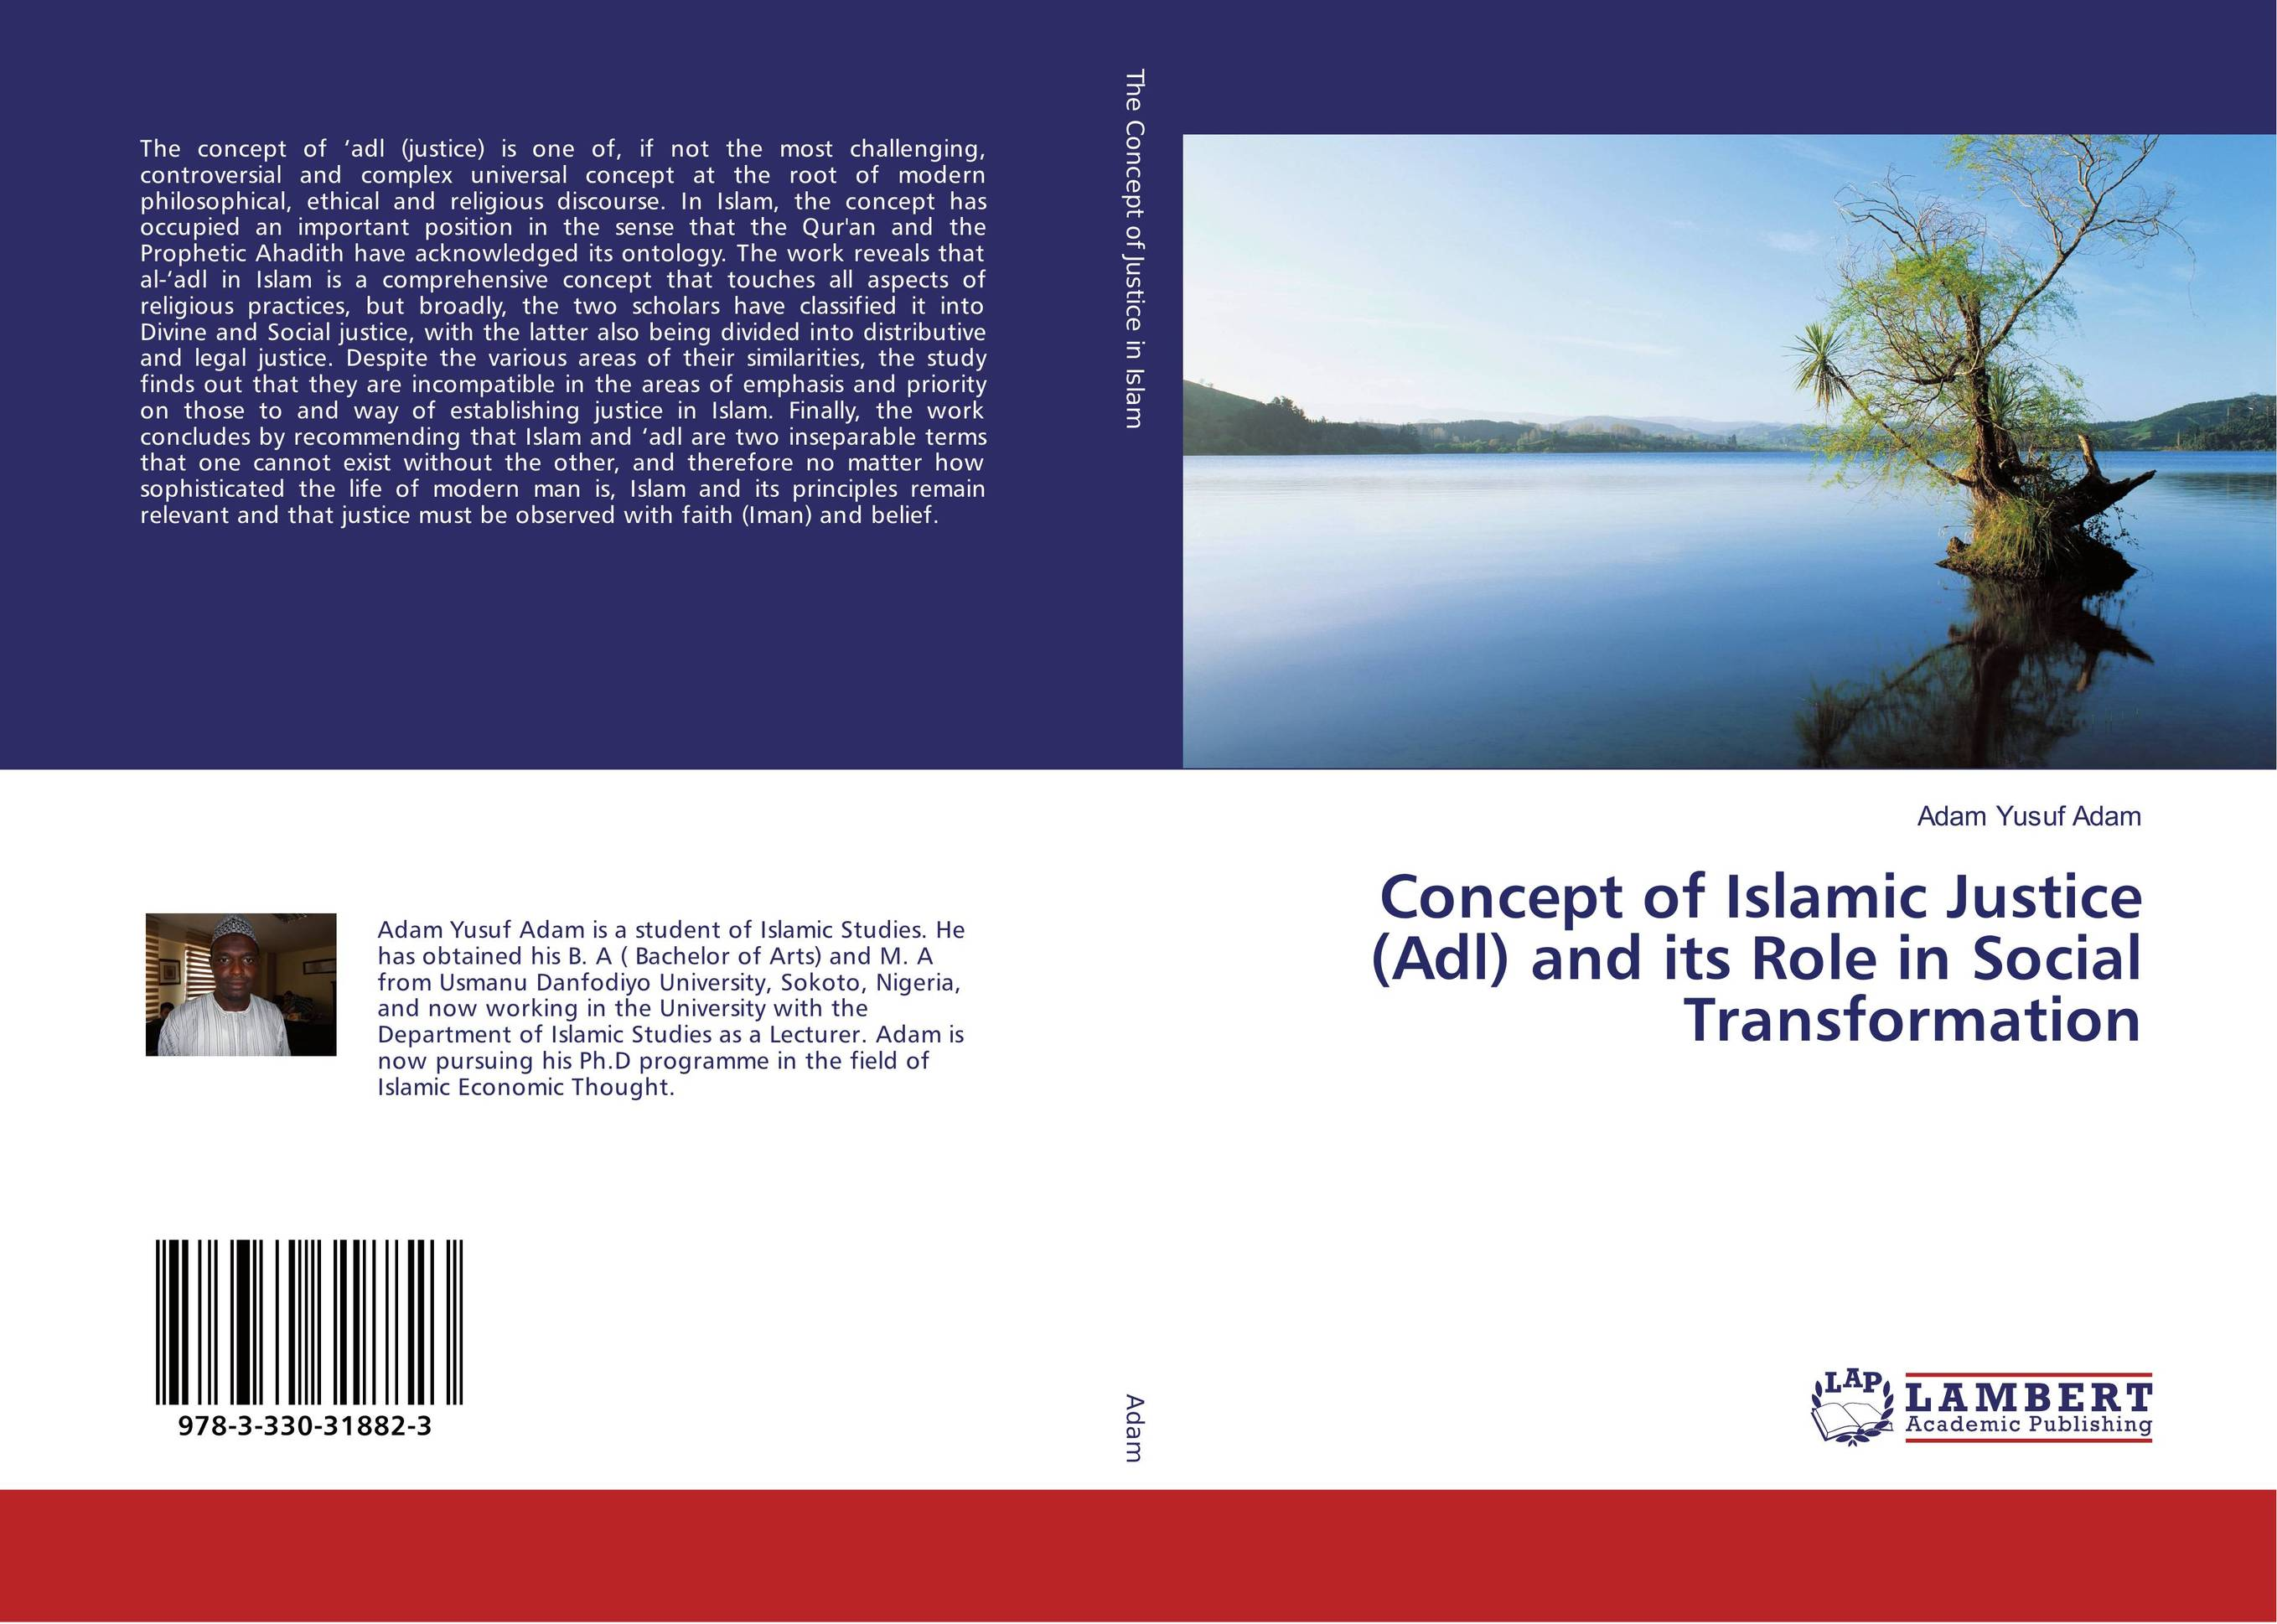 9783330318823 Concept of Islamic Justice Adl and its Role in Sransformation